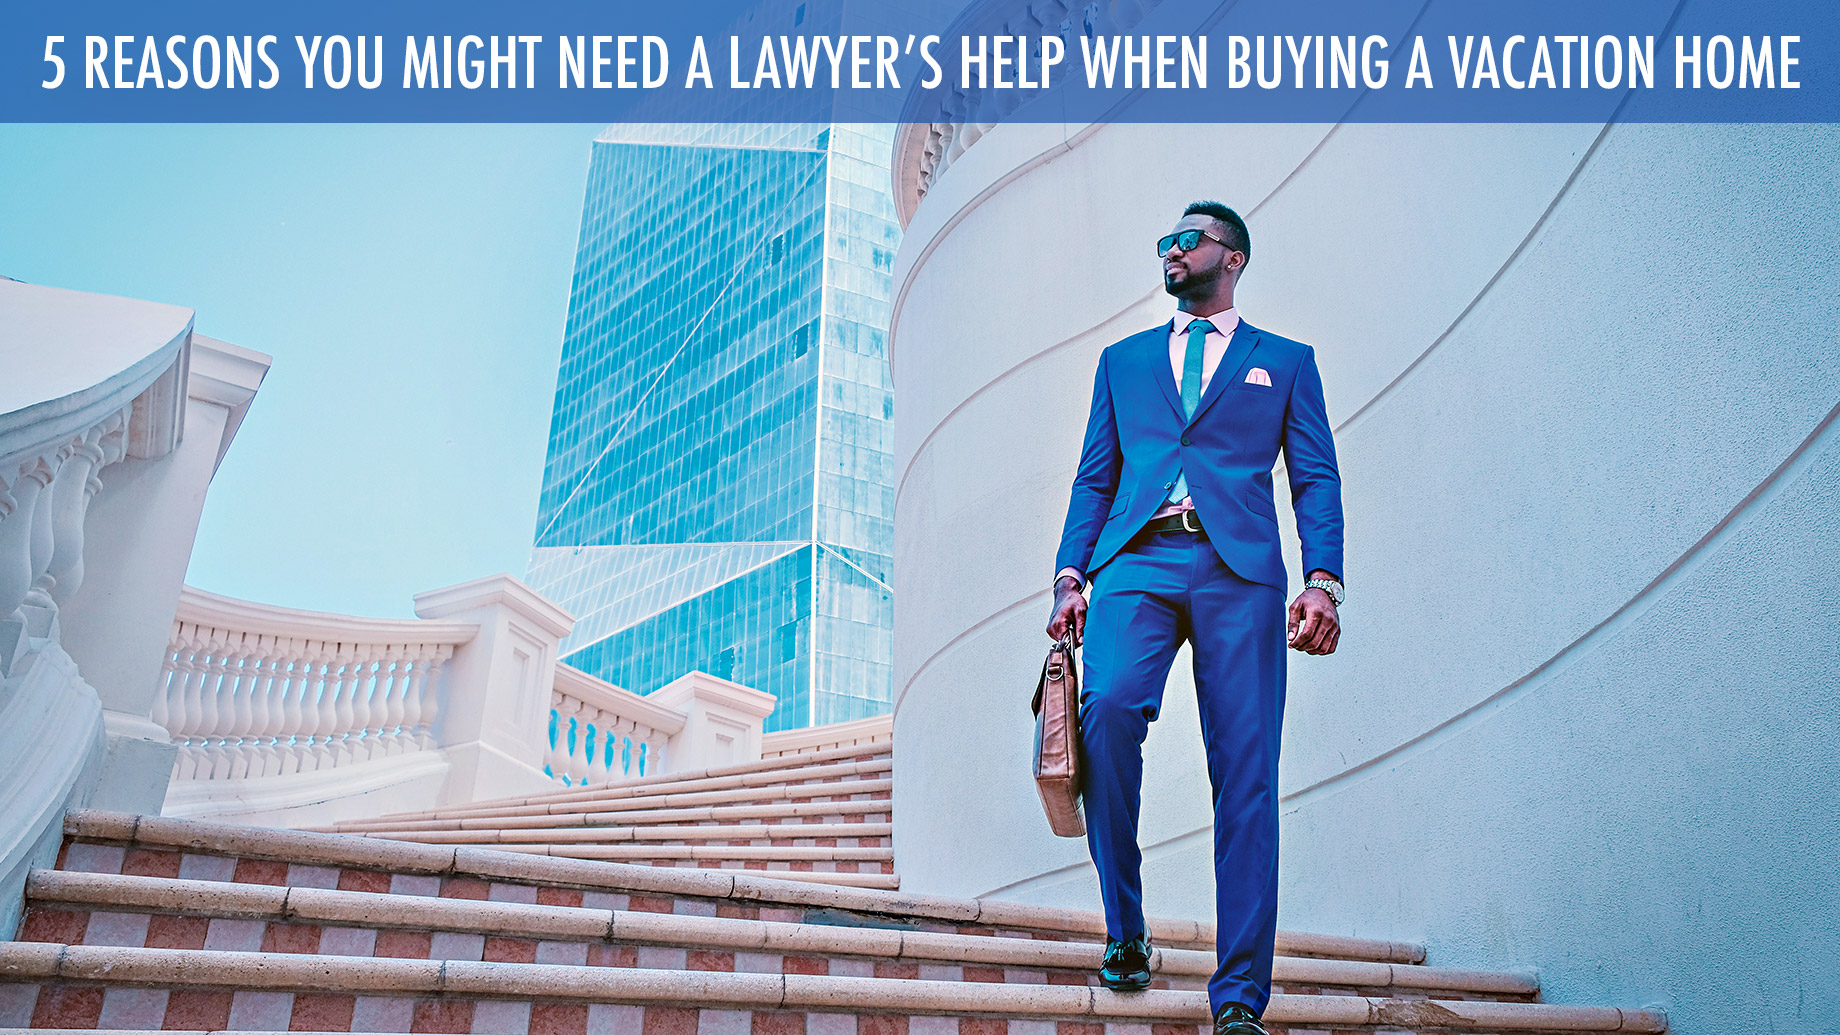 5 Reasons You Might Need a Lawyer's Help When Buying a Vacation Home